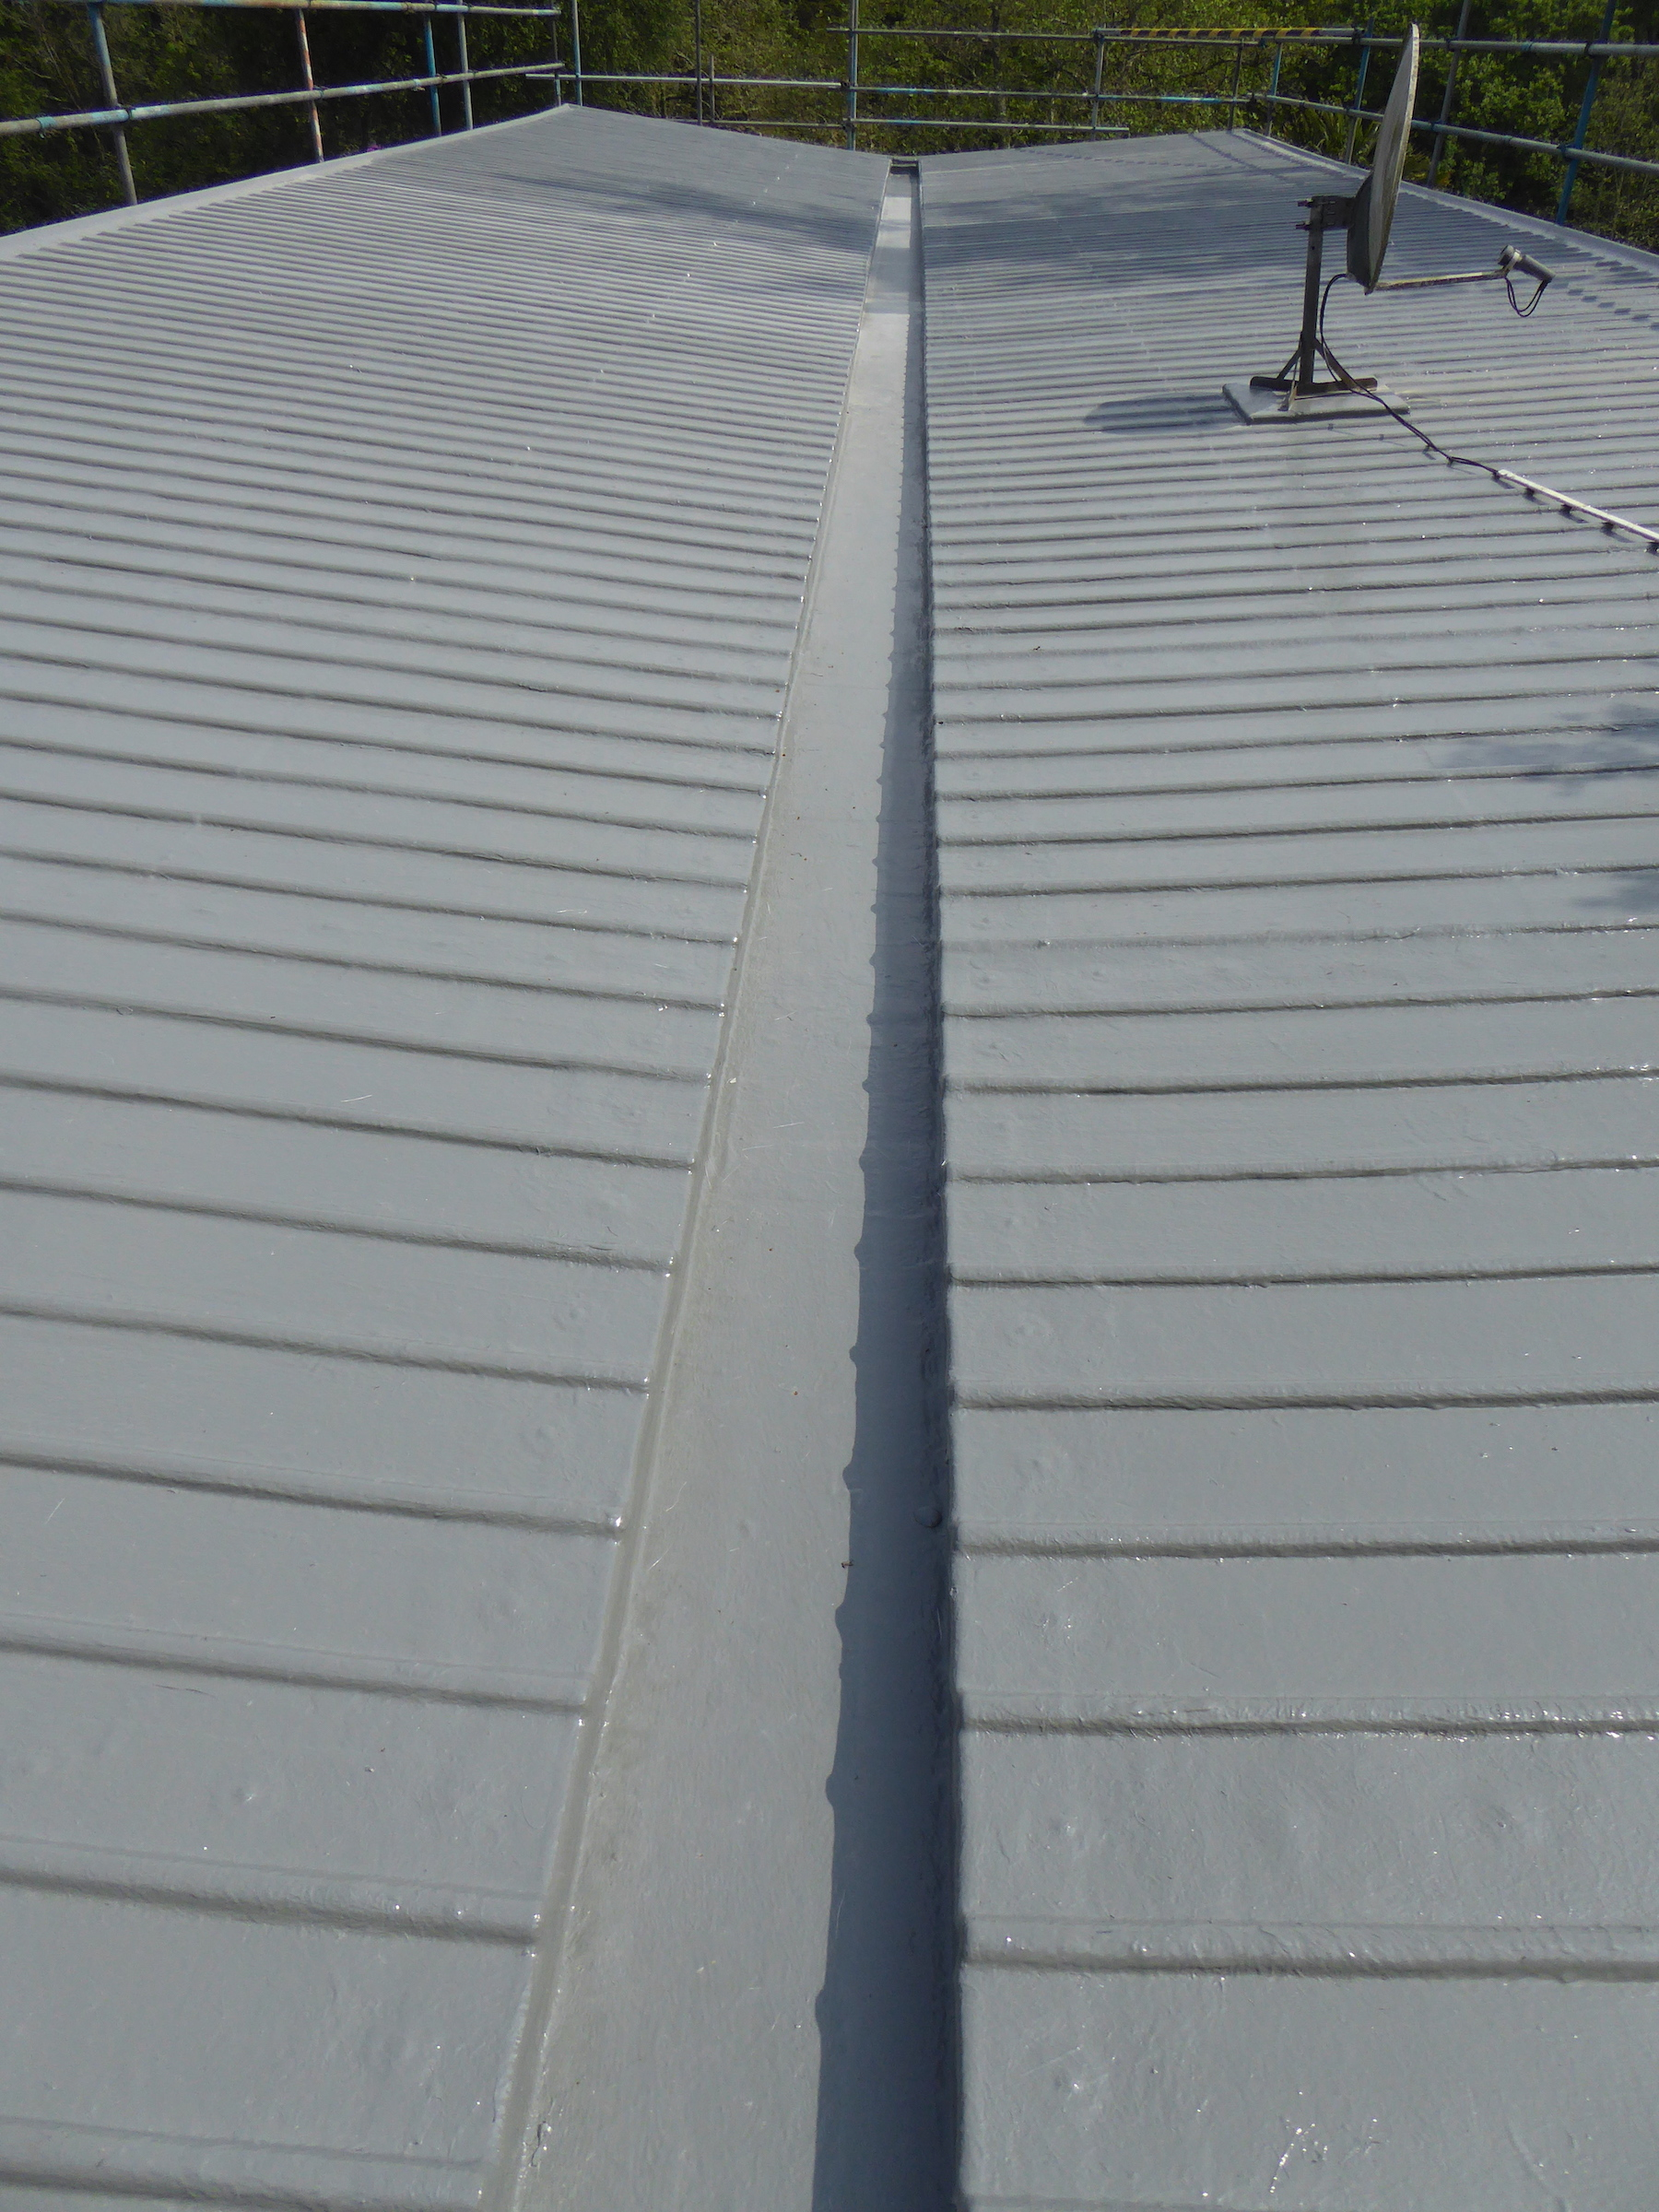 Readymade Fibreglass Grp Ribbed Roofing Sheets Shapes Grp